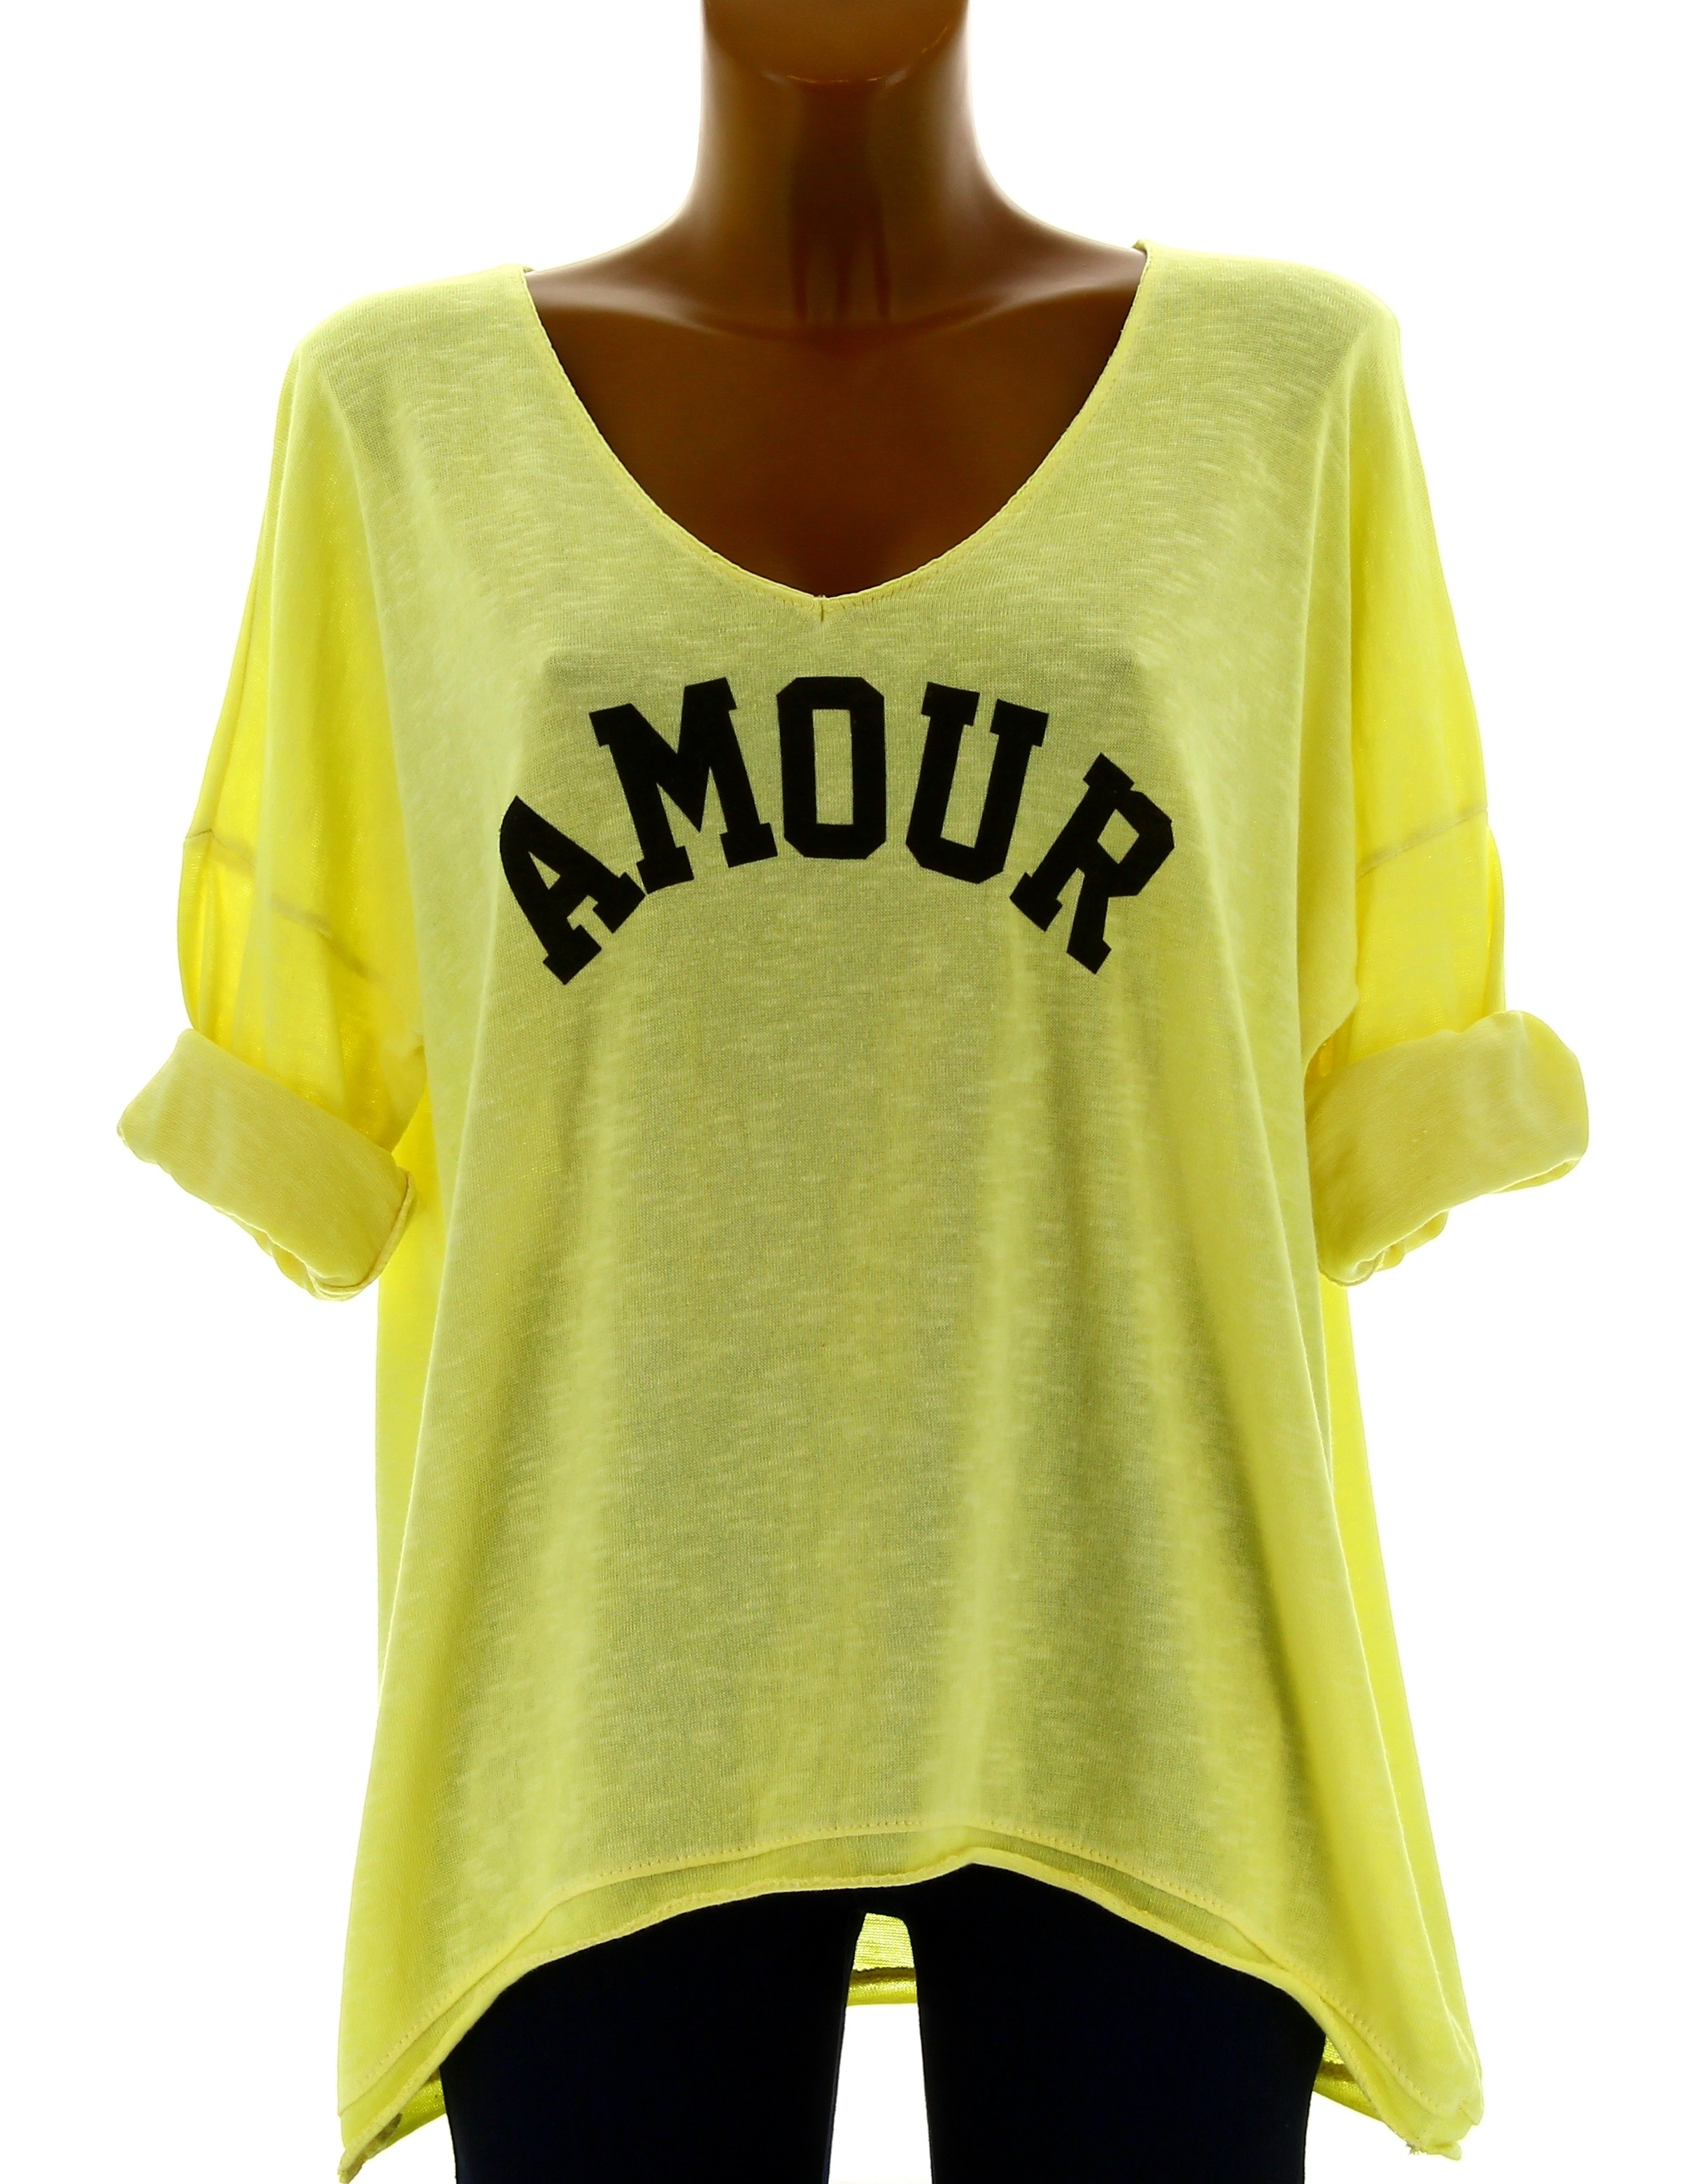 tee shirt femme tunique boh me grande taille jaune amour. Black Bedroom Furniture Sets. Home Design Ideas